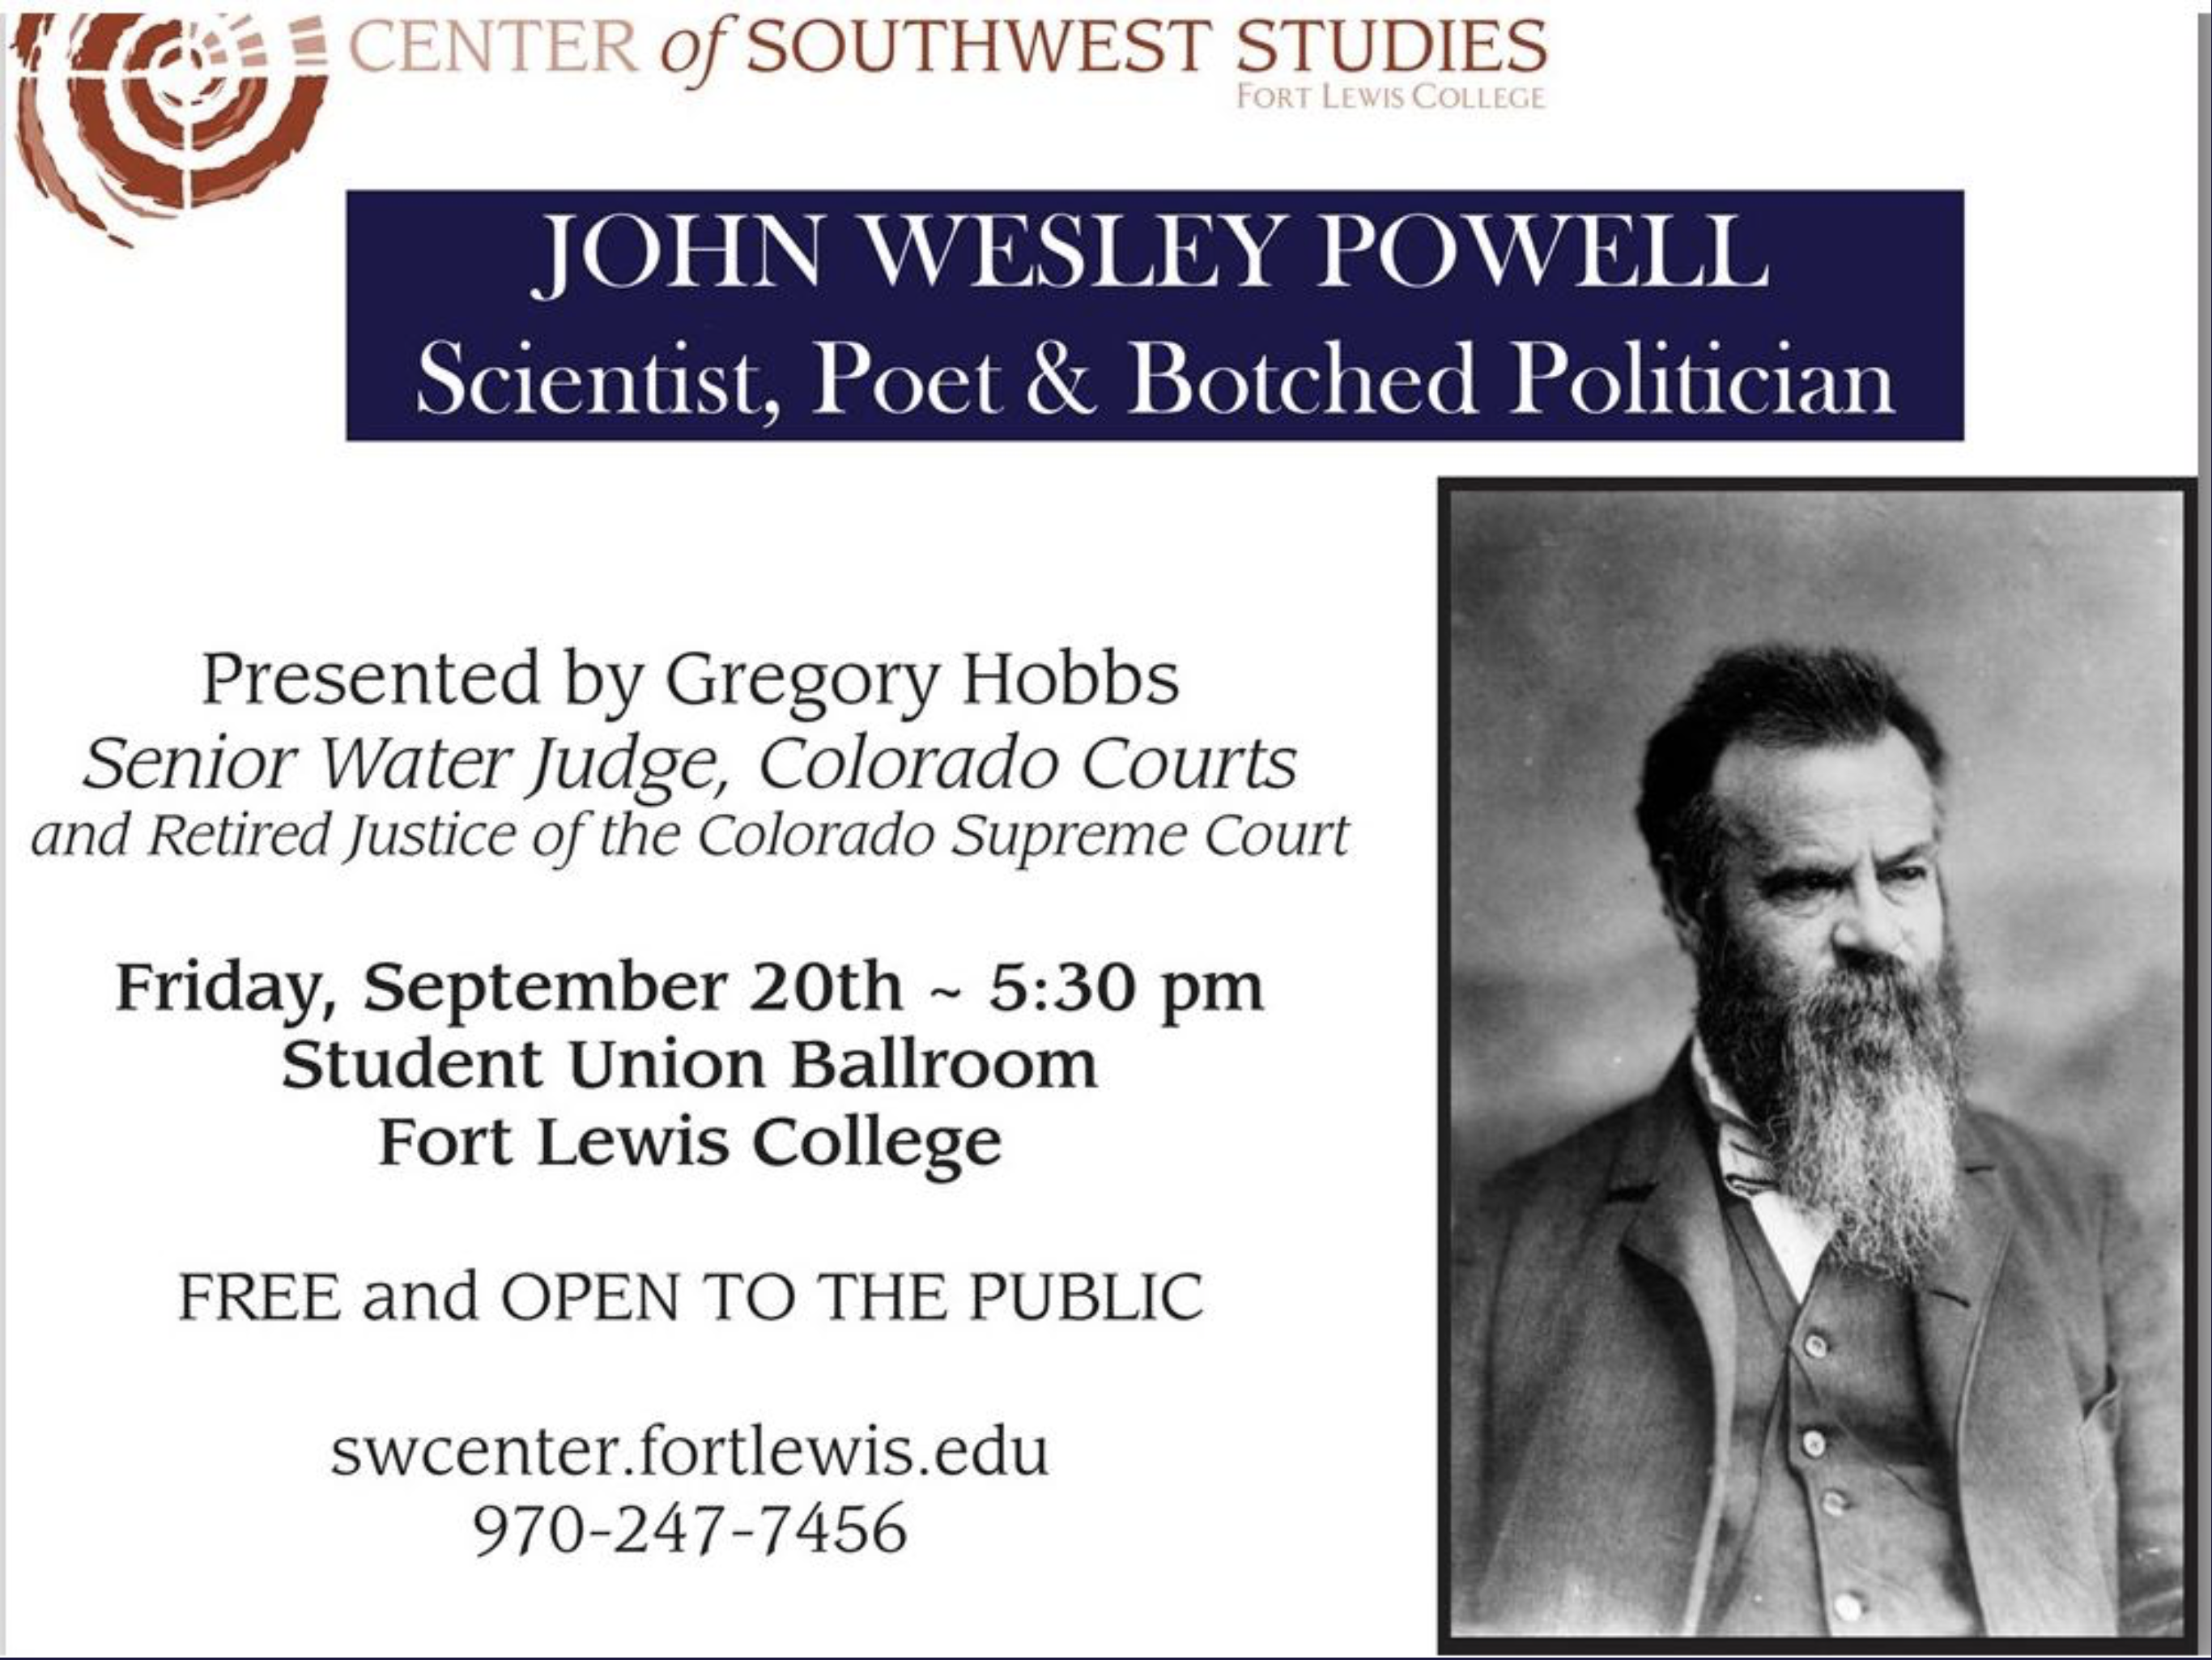 John Wesley Powell: Scientist, Poet and Botched Politician